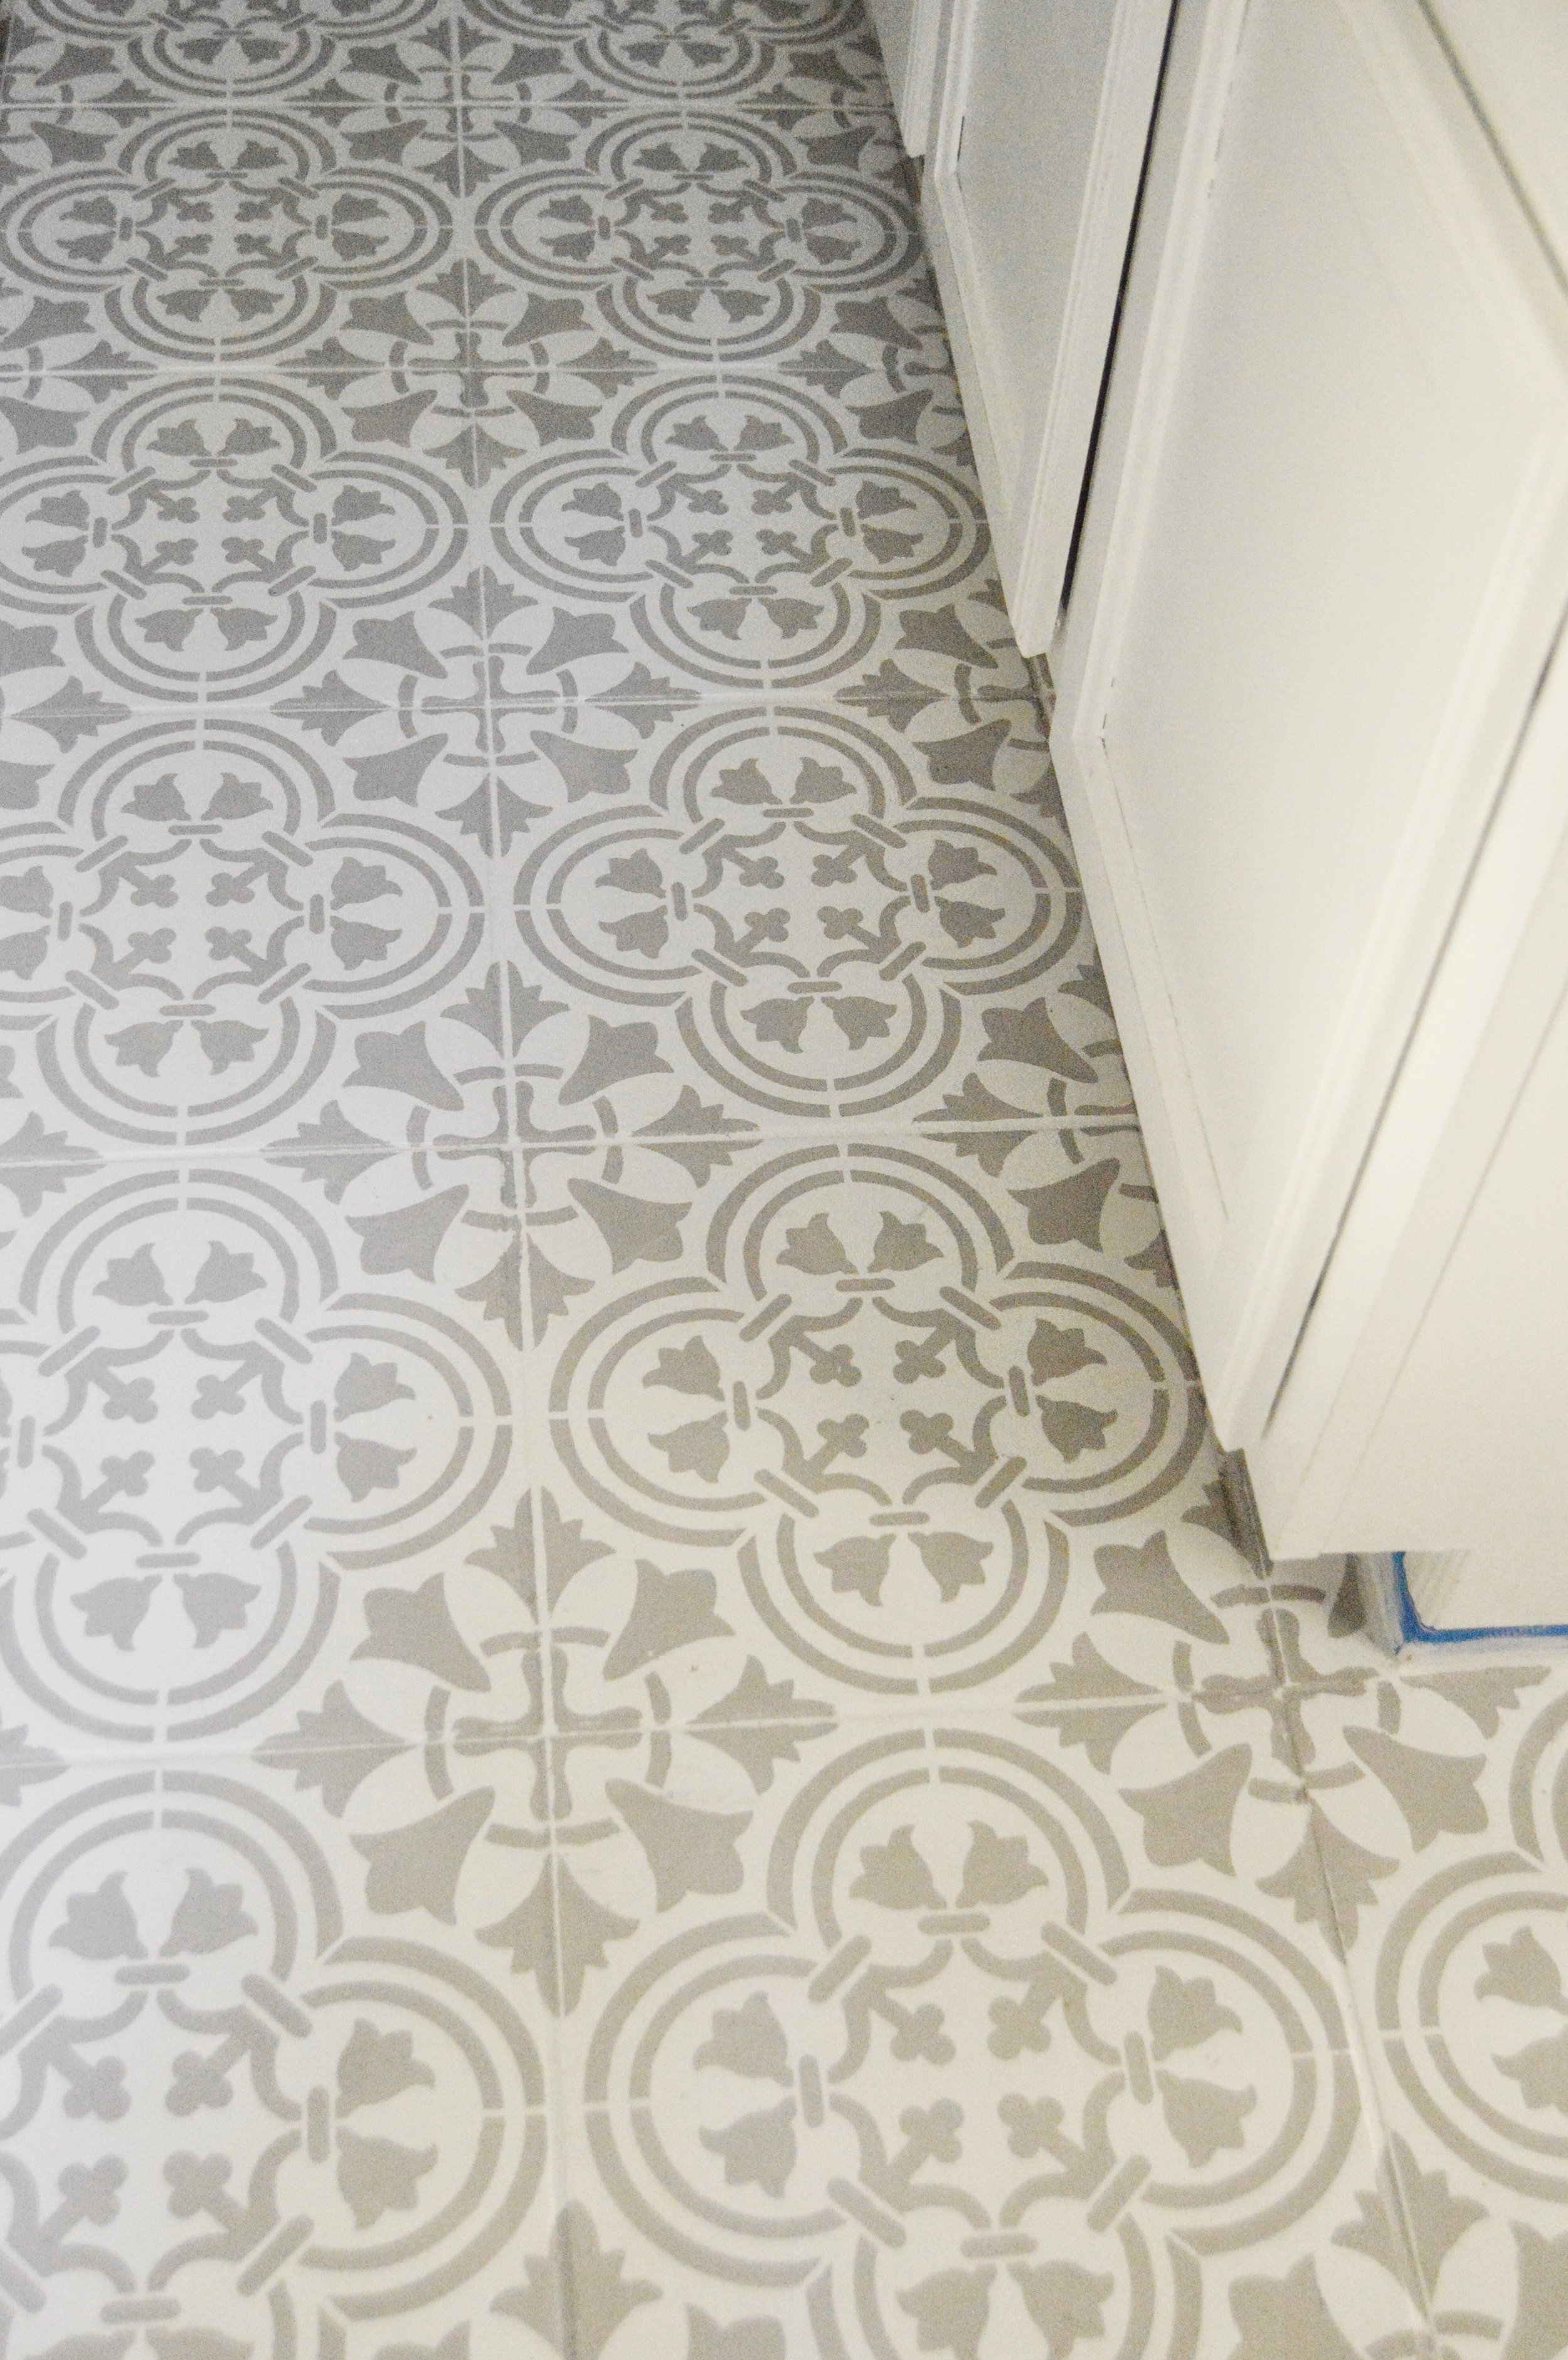 ideas for covering up tile floors